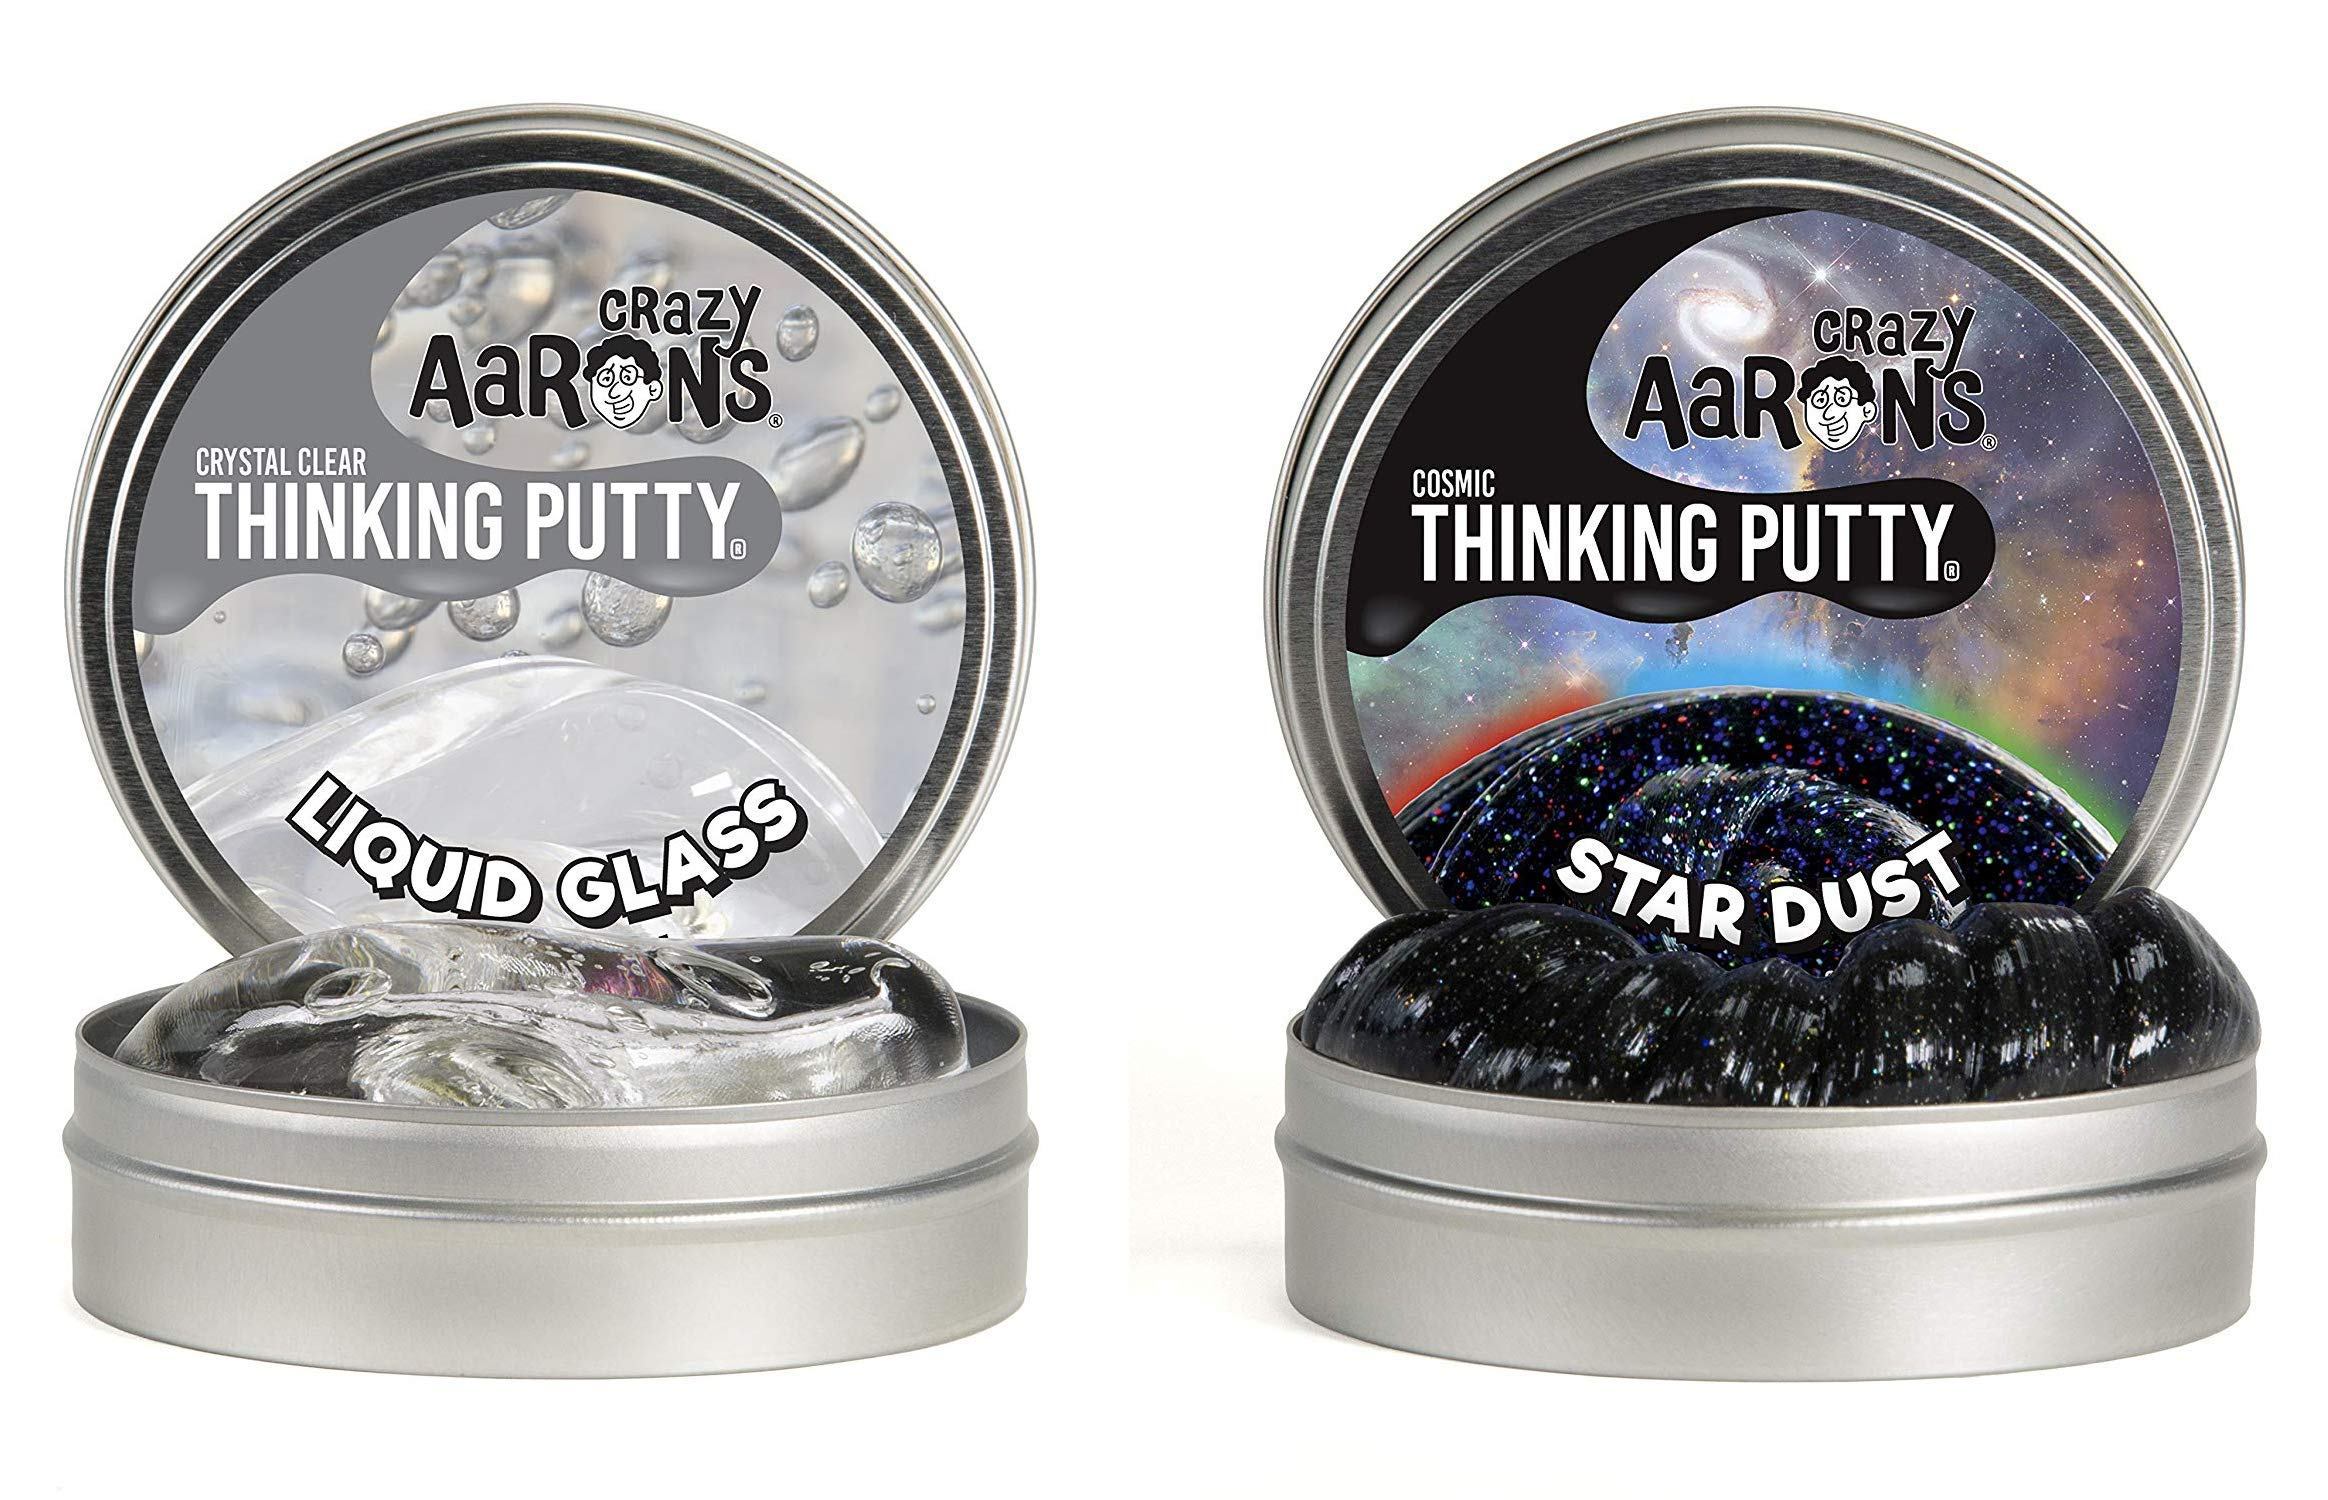 Crazy Aaron's Thinking Putty 4'' Tin Double Pack (6.4 oz) - Liquid Glass and Cosmic Star Dust - Crystal-Clear, See-Through and Multi-Colored Glow Putty- Never Dries Out by Crazy Aaron's Thinking Putty